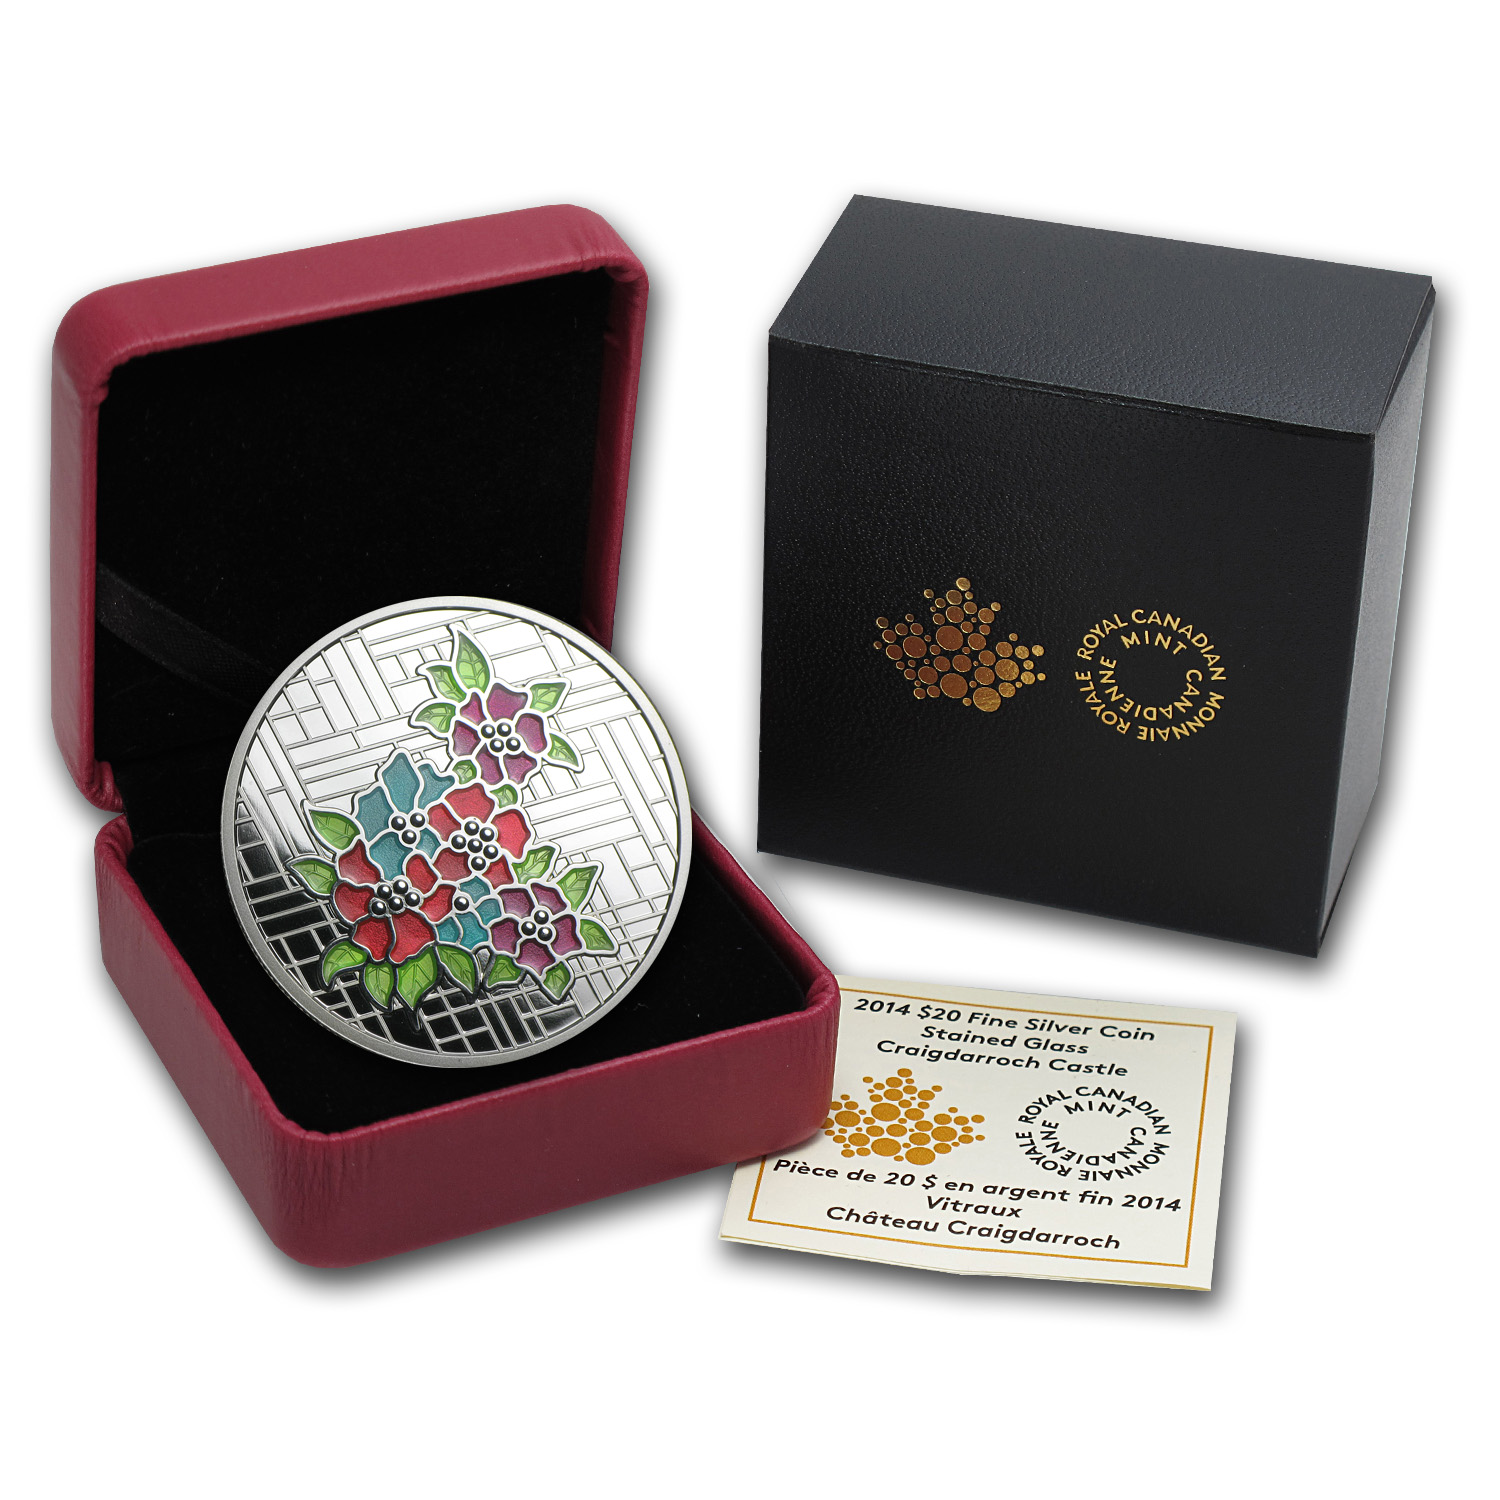 2014 1 oz Silver Canadian $20 Stained Glass - Craigdarroch Castle